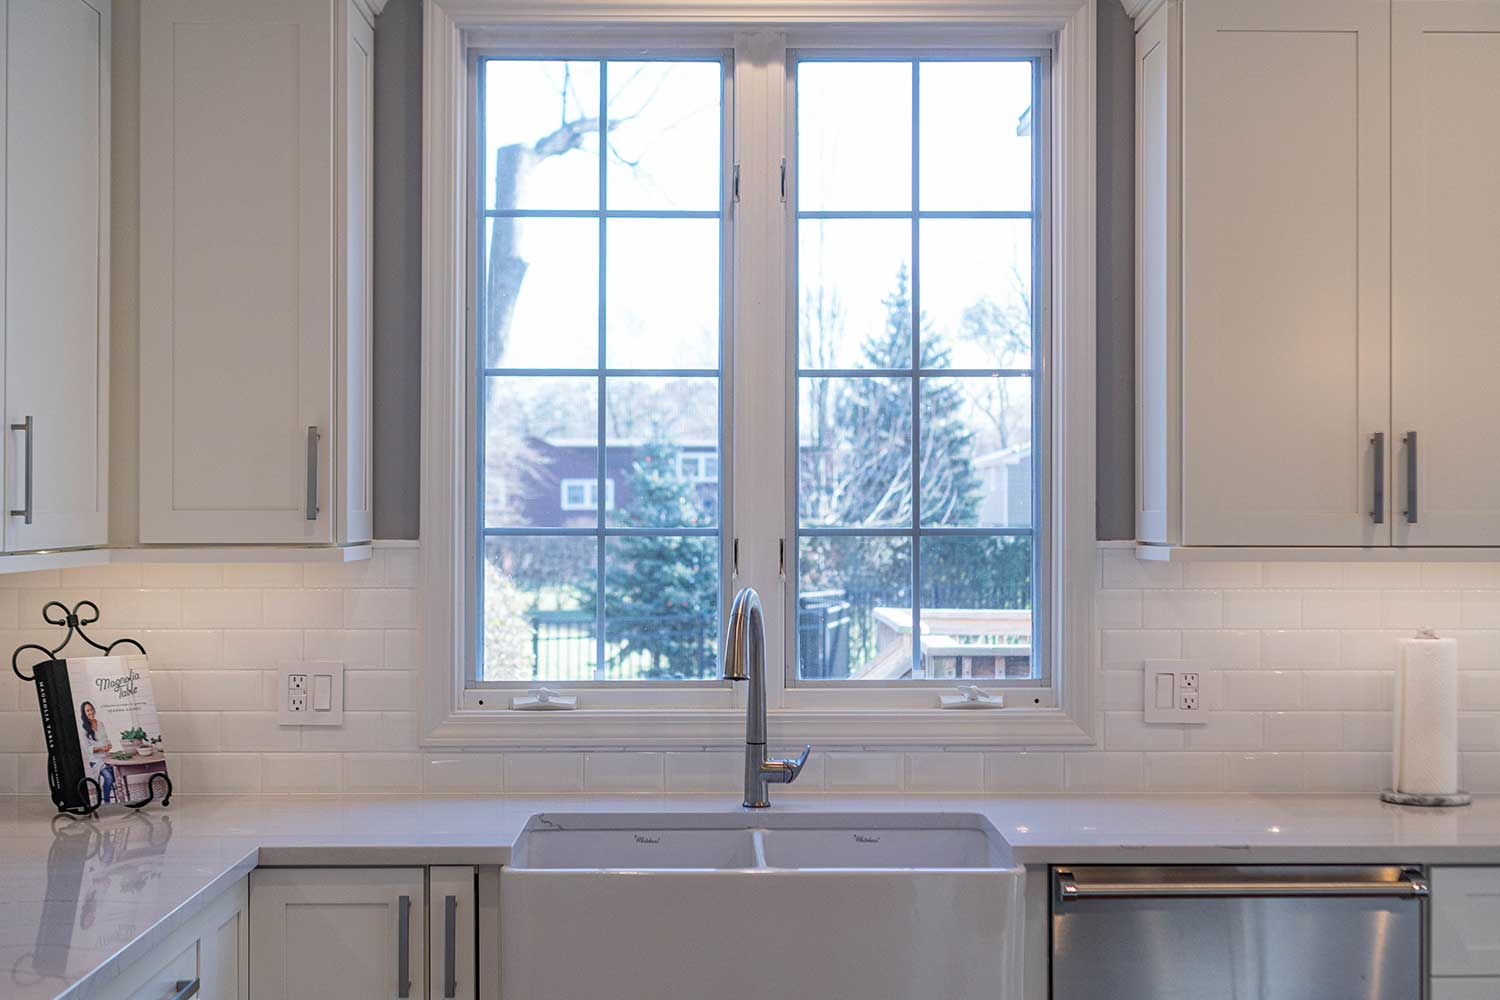 Kitchen sink with window behind and white cabinets